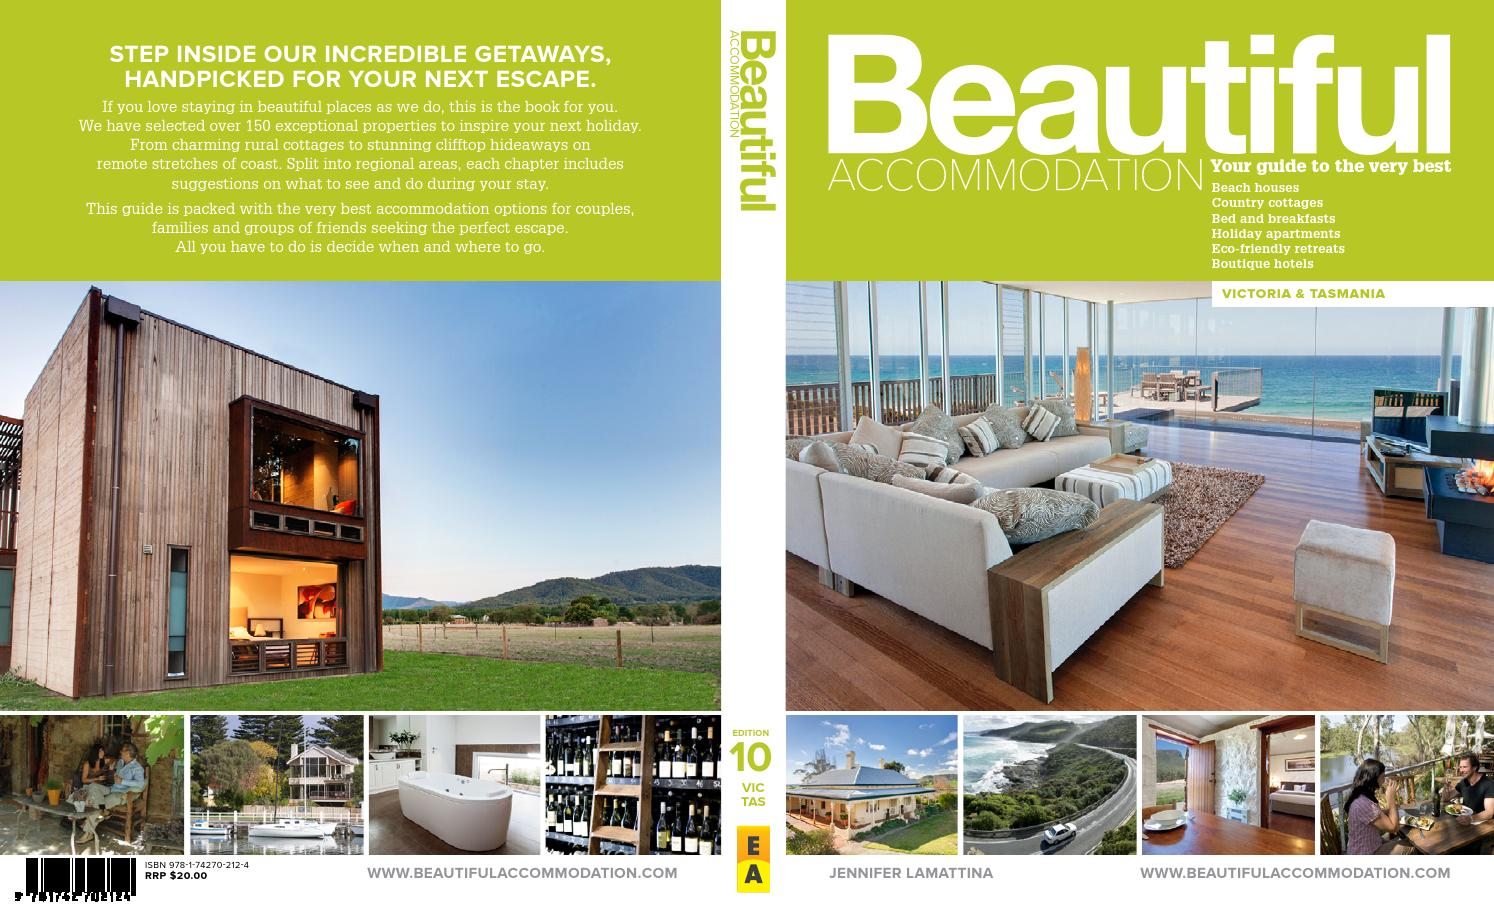 Beautiful Accommodation in Victoria and Tasmania by Simon St John